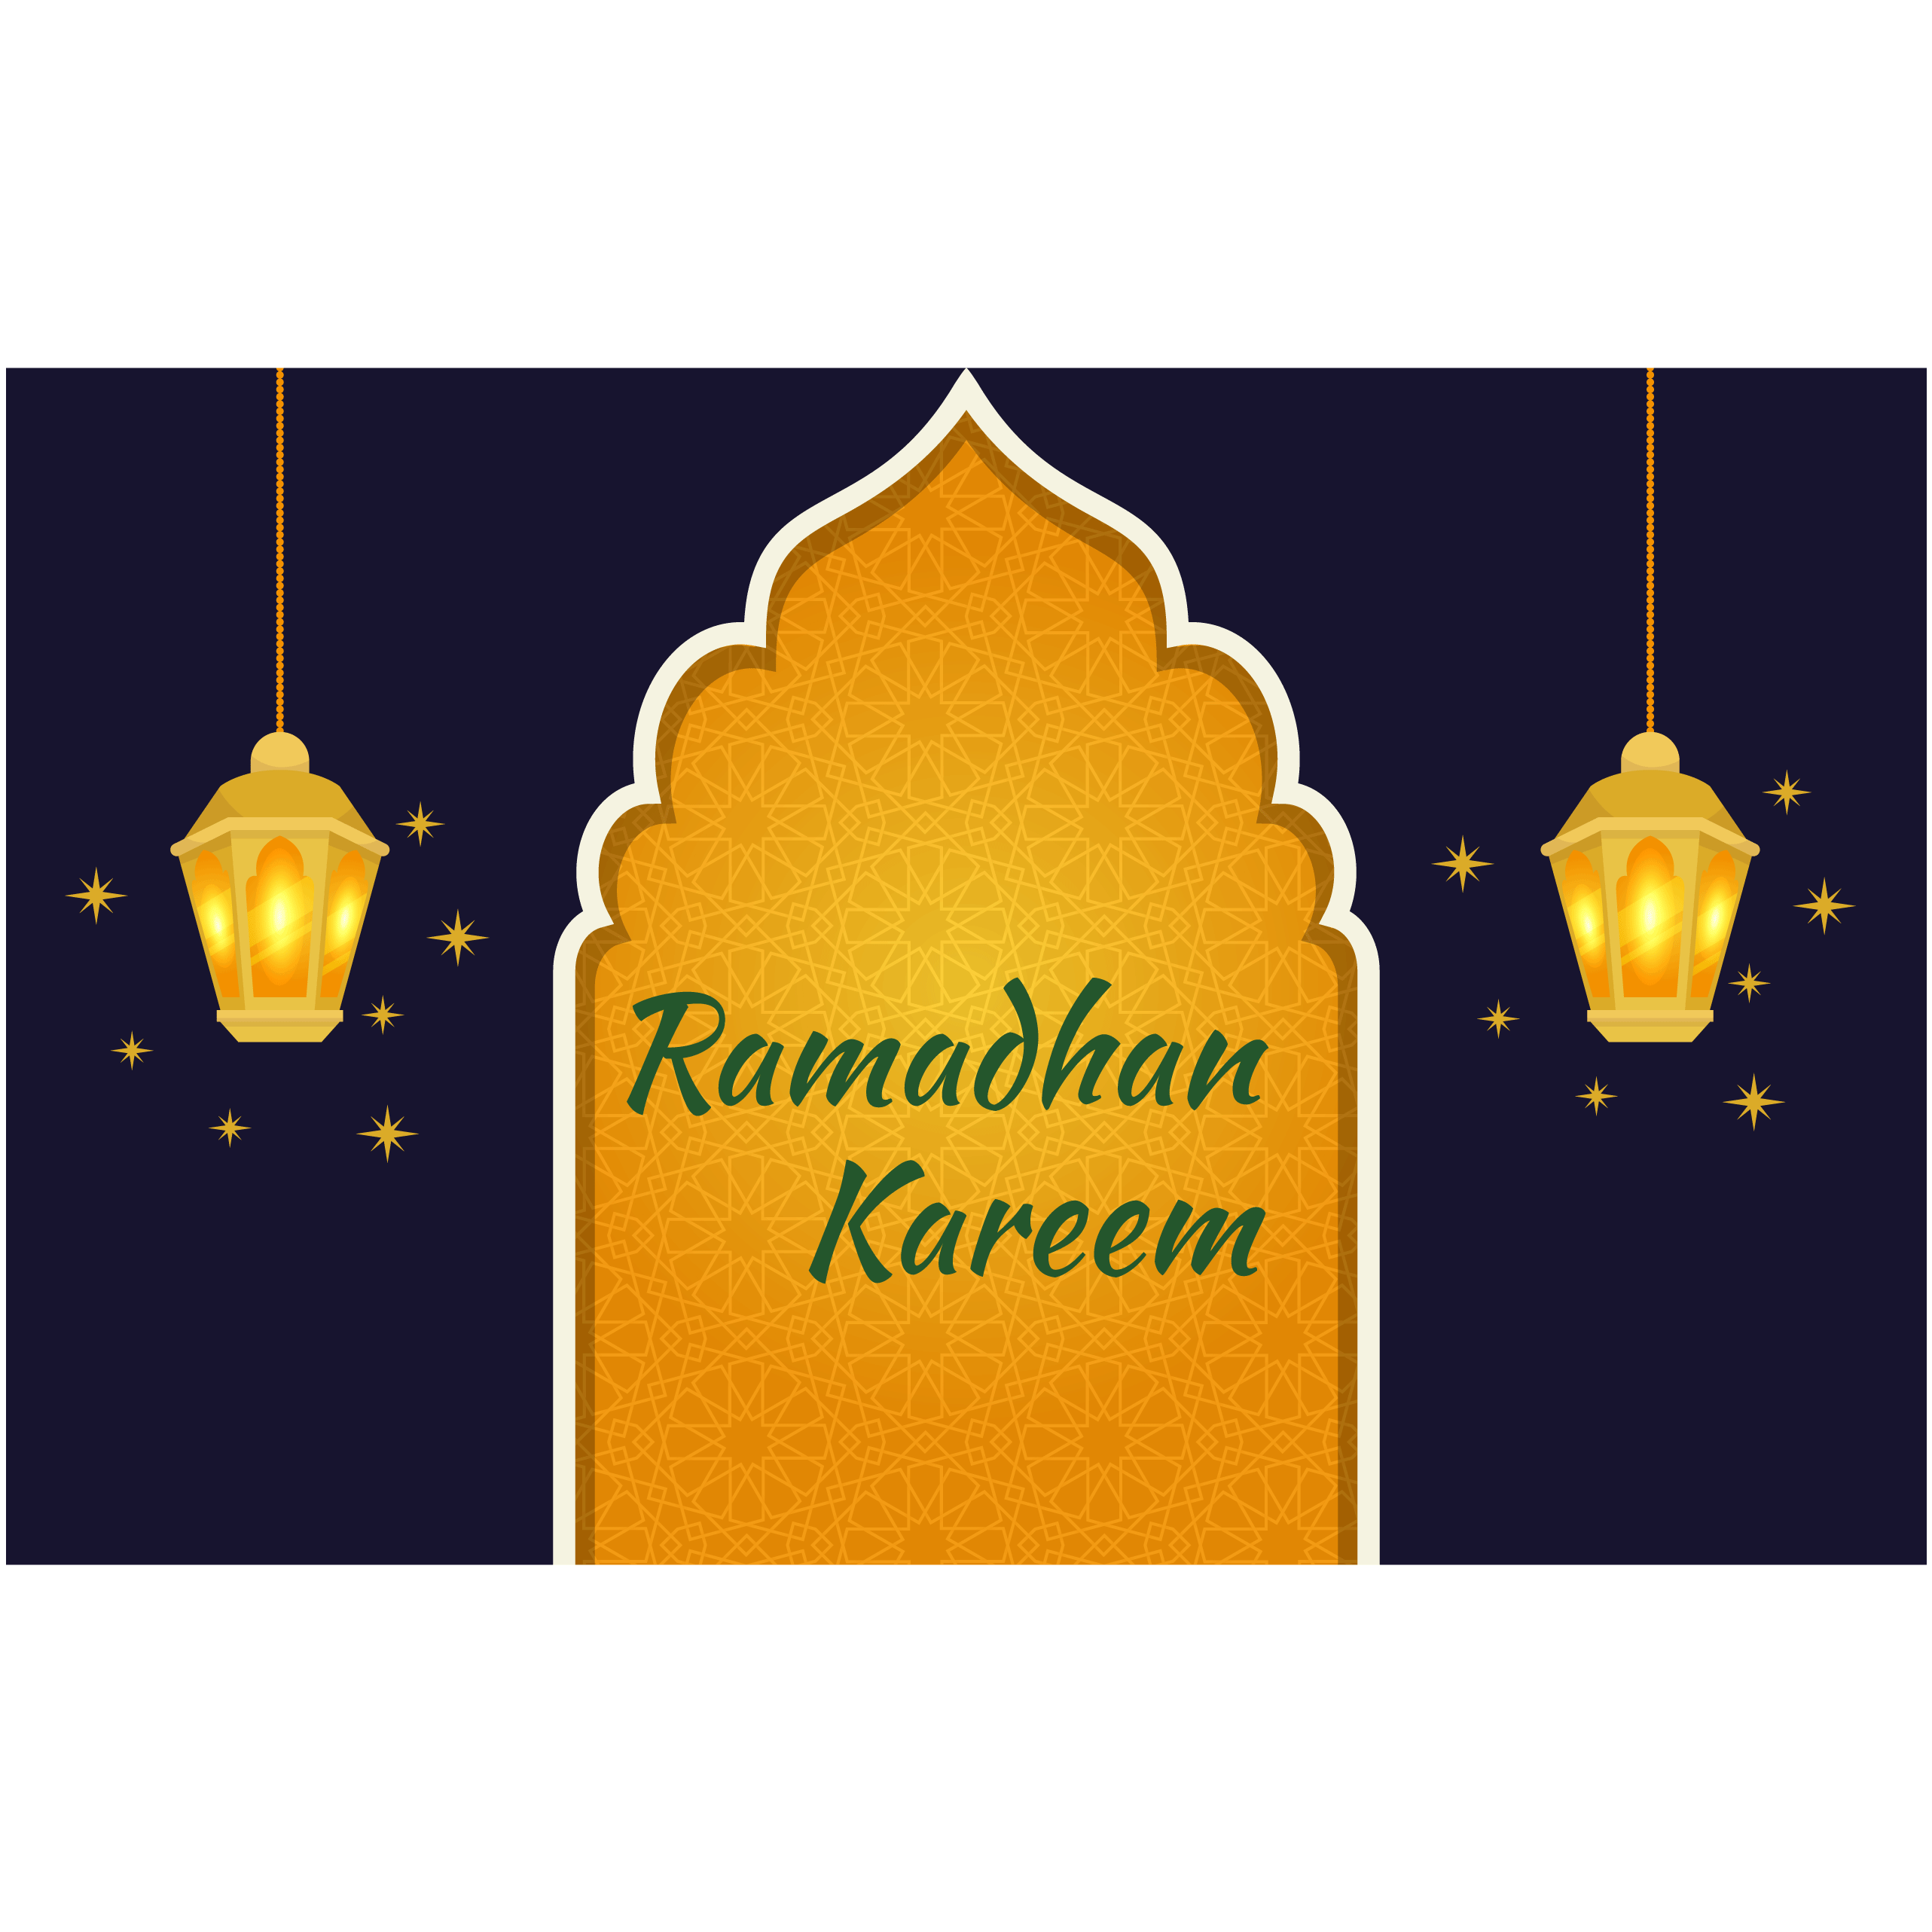 Blue Ramadan Greeting Card With Glowing Lanterns Download Free Vectors Clipart Graphics Vector Art